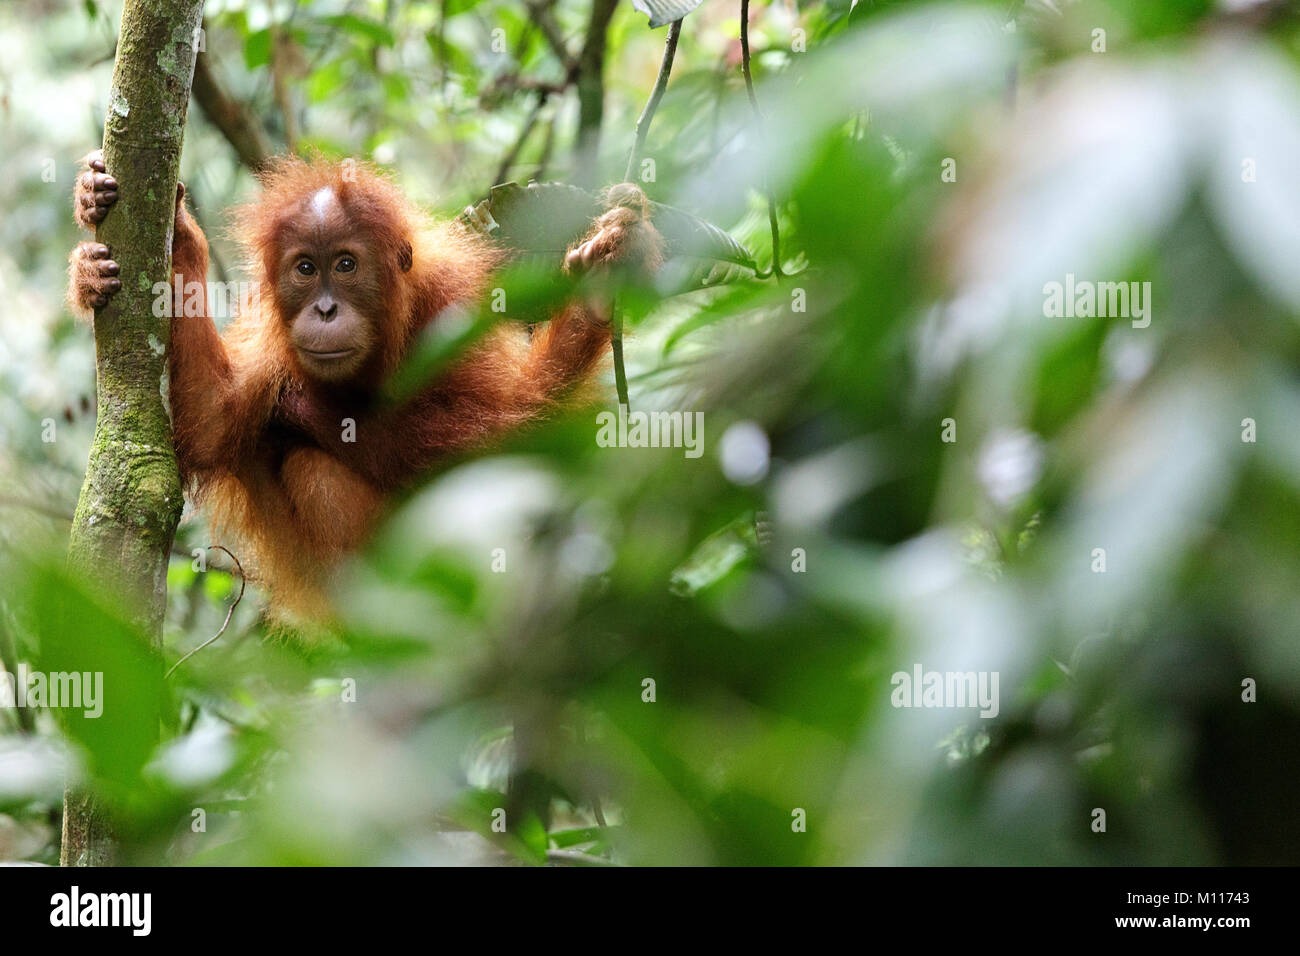 Baby orangutan plays in the rainforest of Gunung Leuser National Park, Sumatra, Indinesia - Stock Image